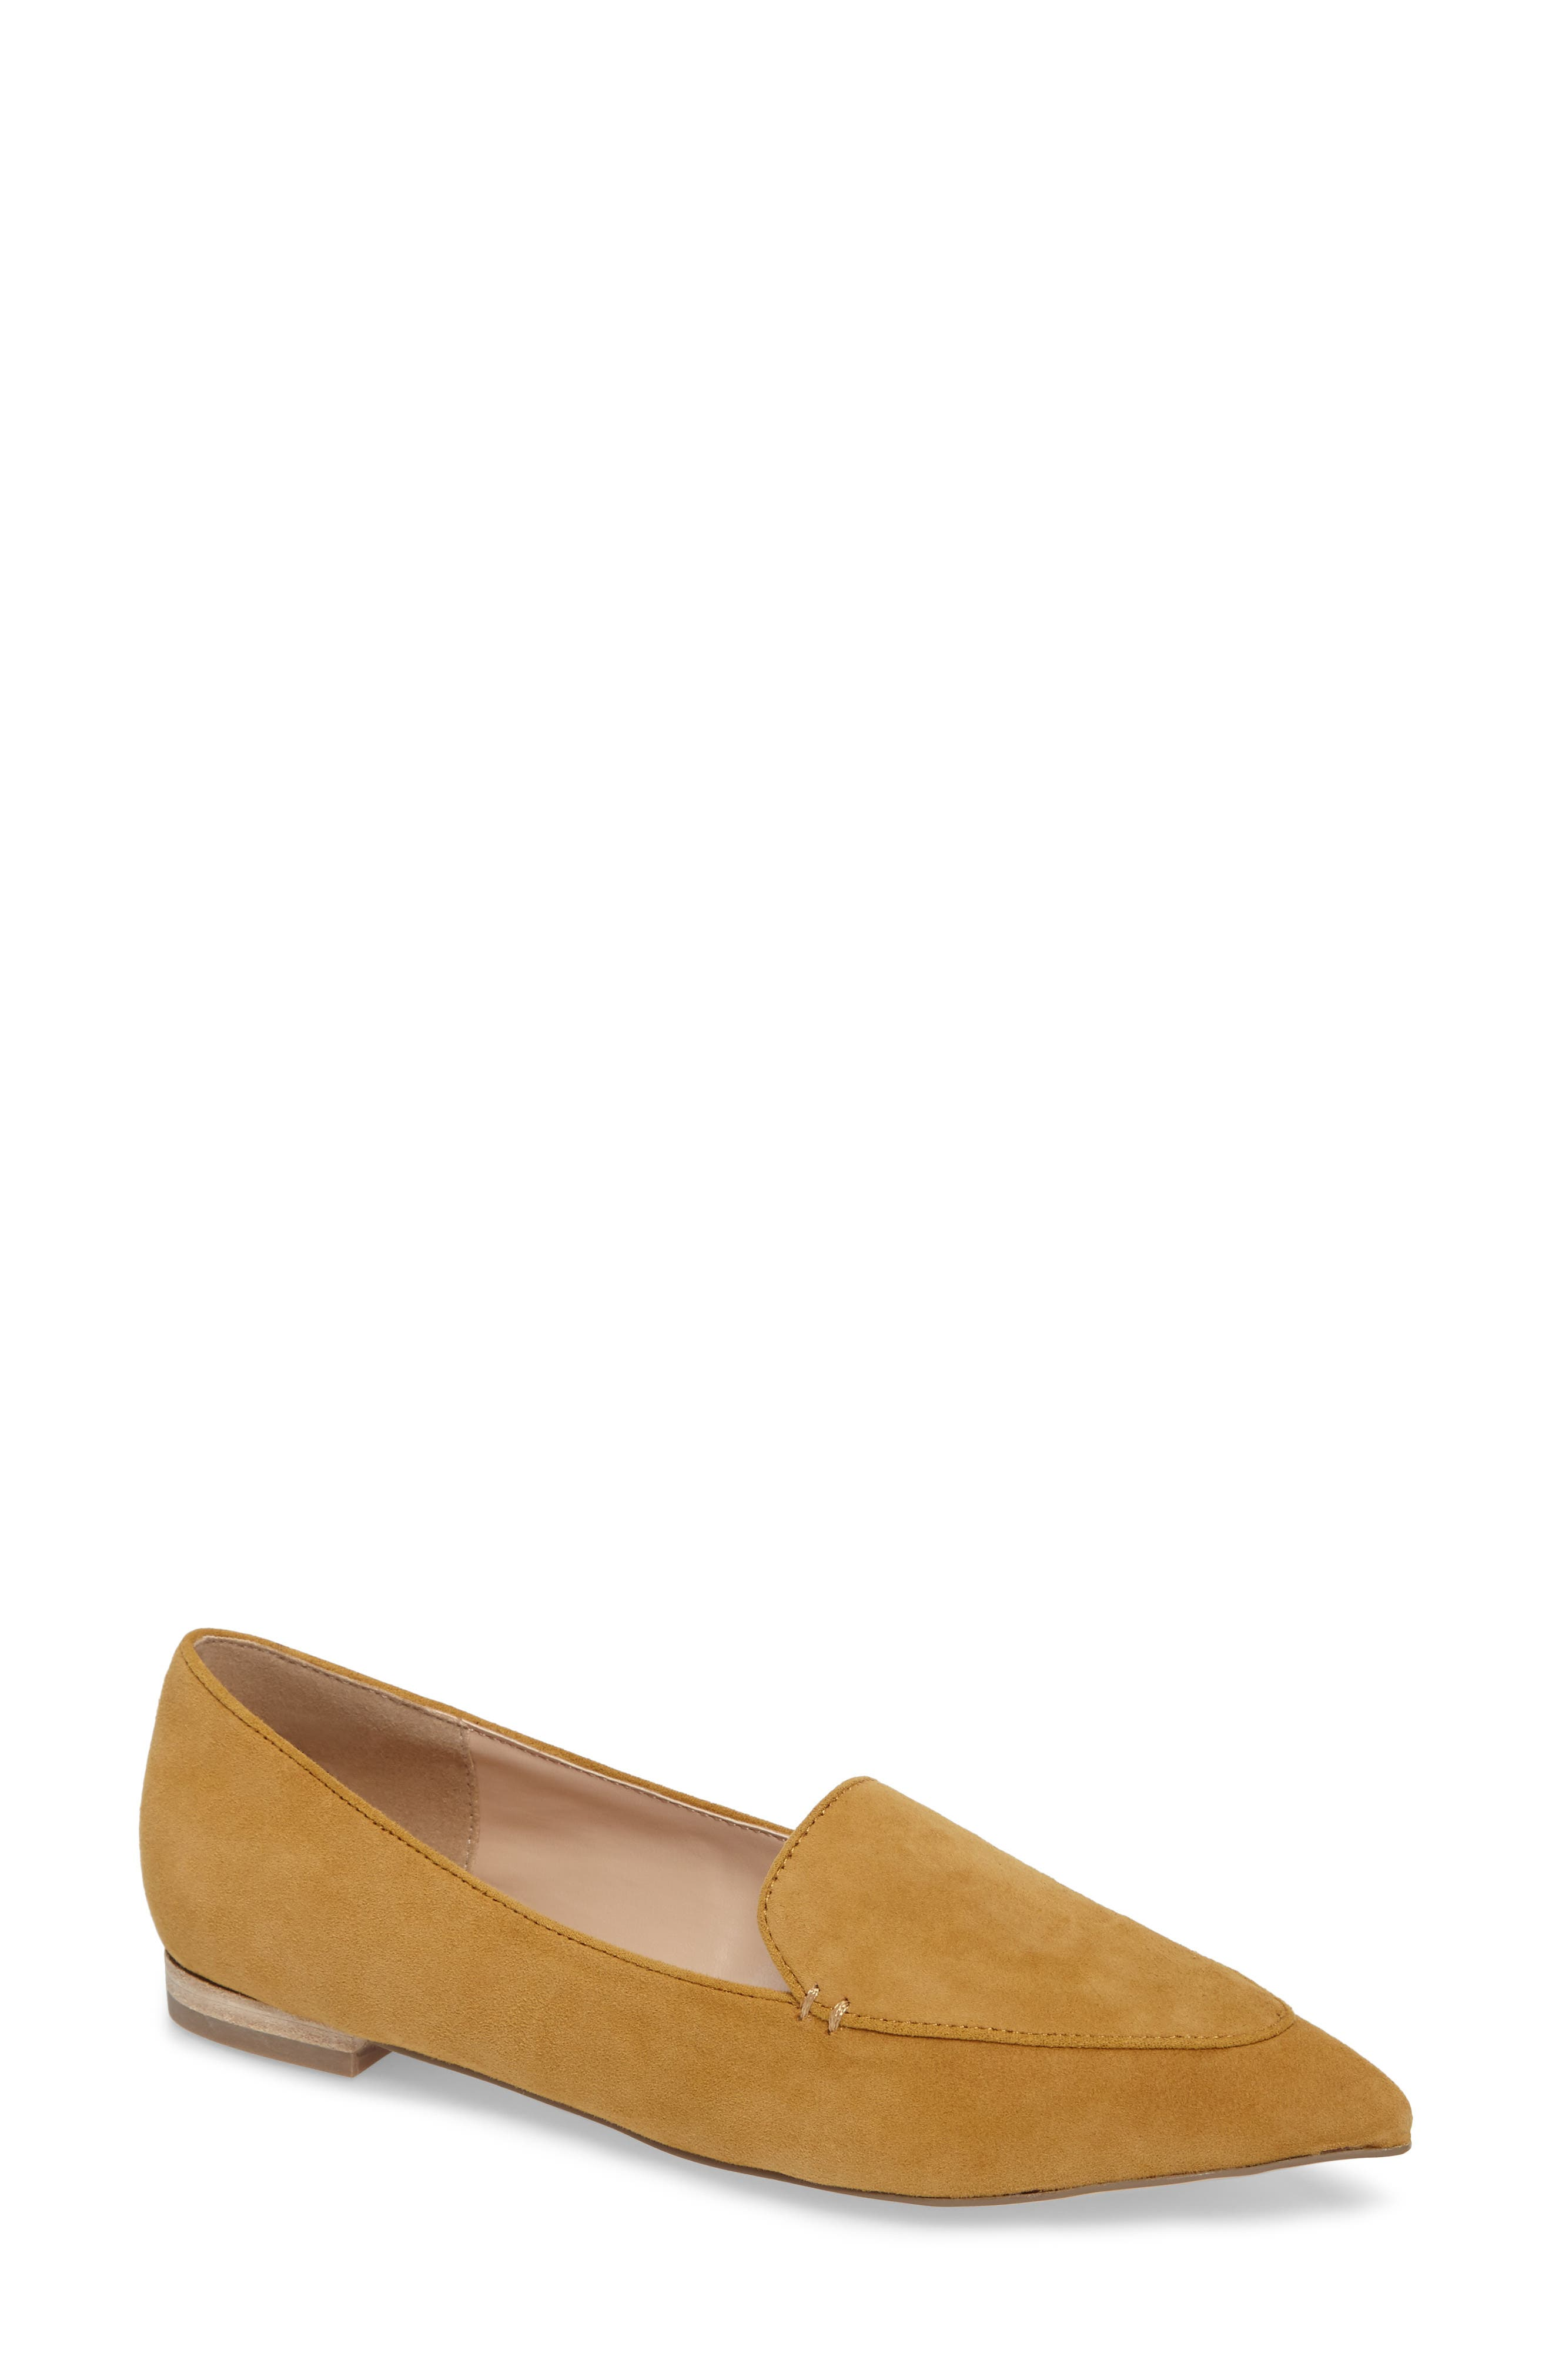 'Cammila' Pointy Toe Loafer,                             Main thumbnail 6, color,